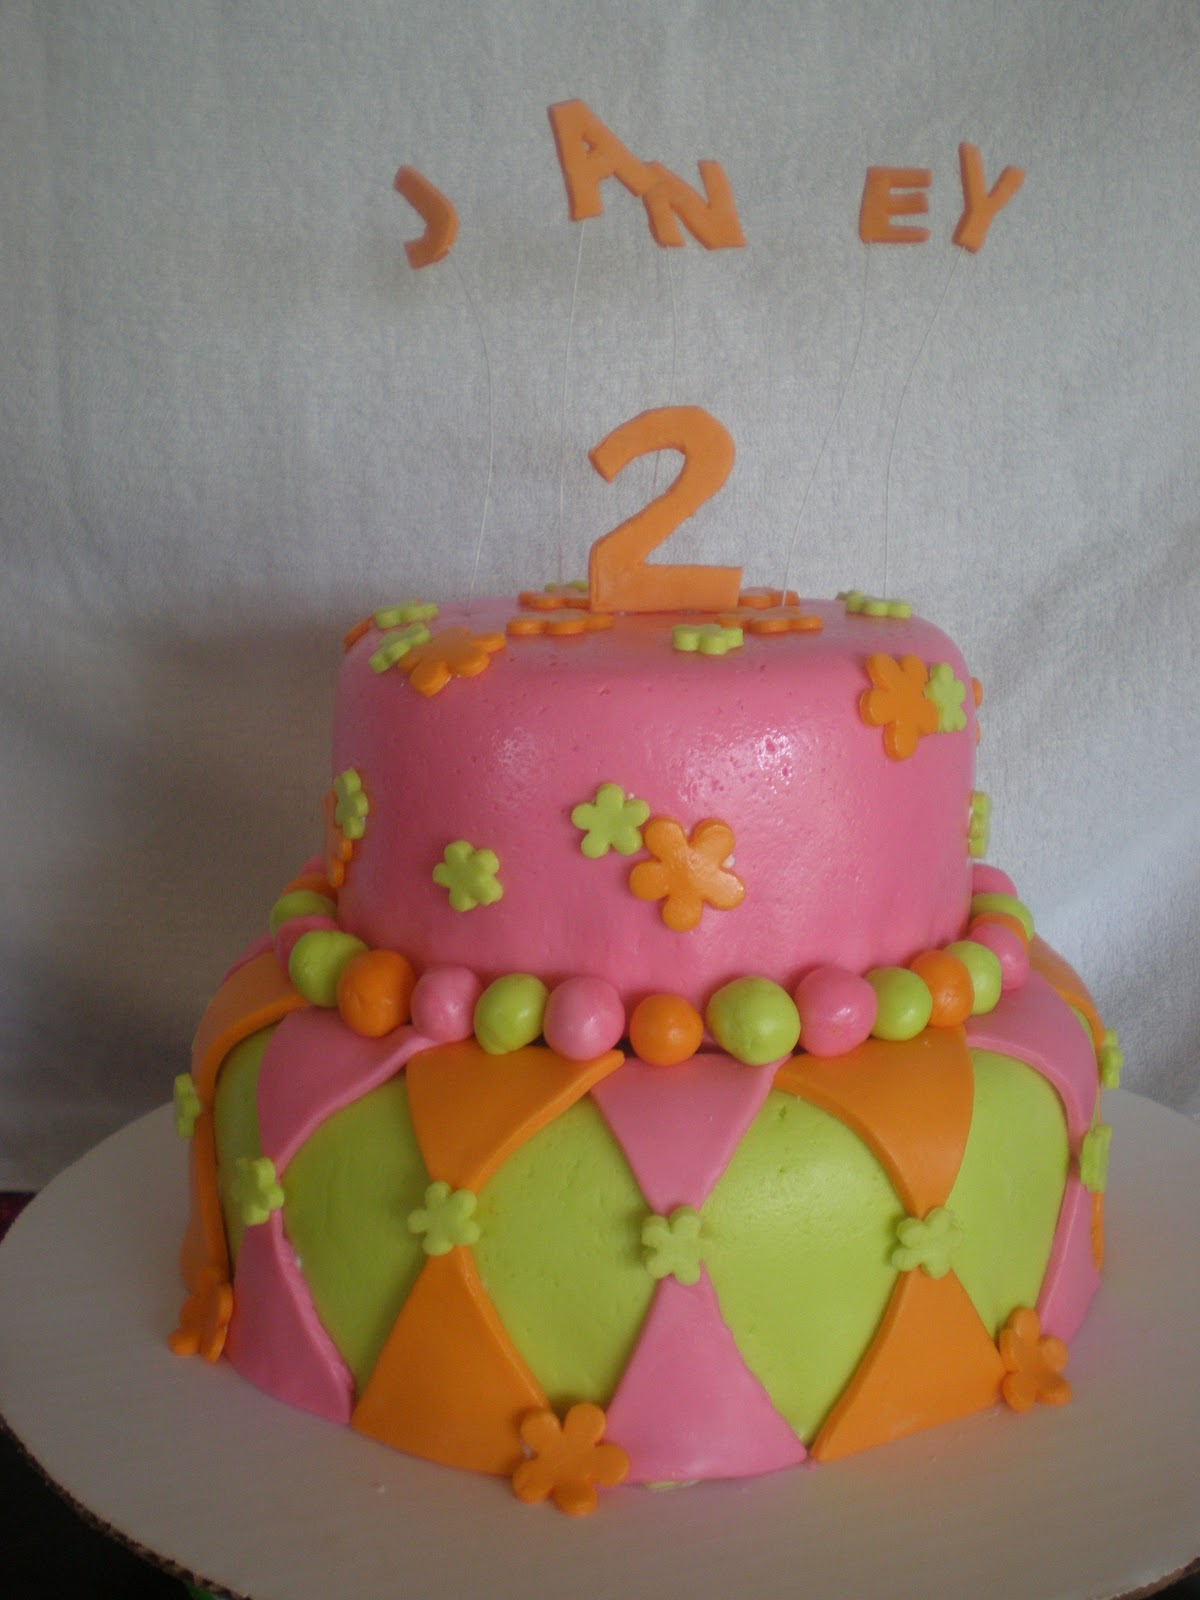 Aprils Aloha Cakes 2 Year Old Birthday Cake